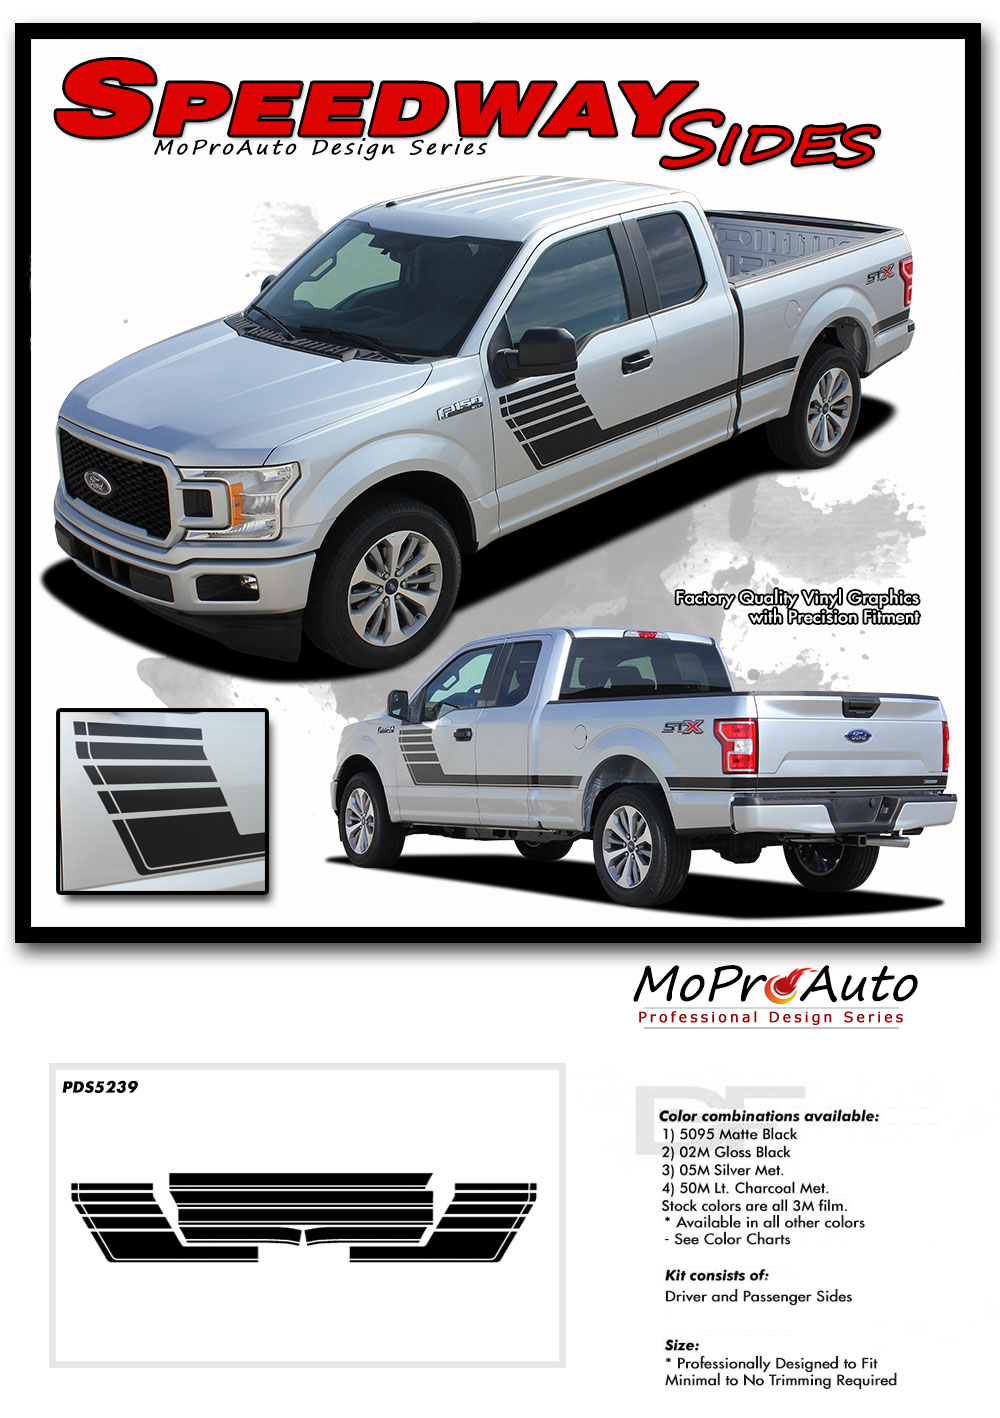 SPEEDWAY Special Edition 2015 2016 2017 2018 Ford F-Series F-150 Hockey Stick Appearance Package Vinyl Graphics and Decals Kit by MoProAuto Pro Design Series